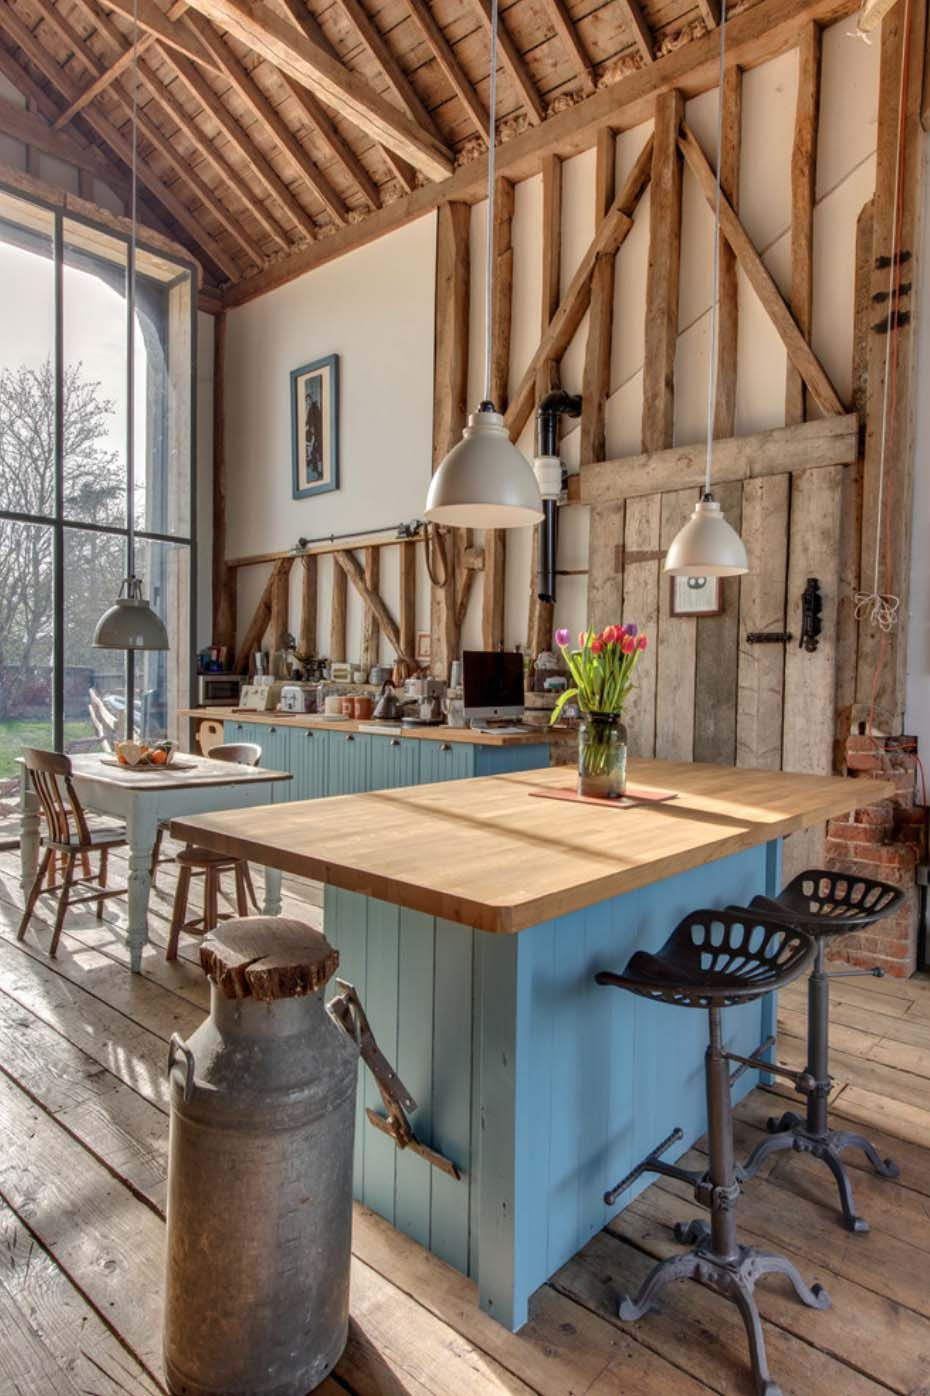 breathtaking country chic kitchen | 33 Amazing country-chic kitchens brimming with character ...